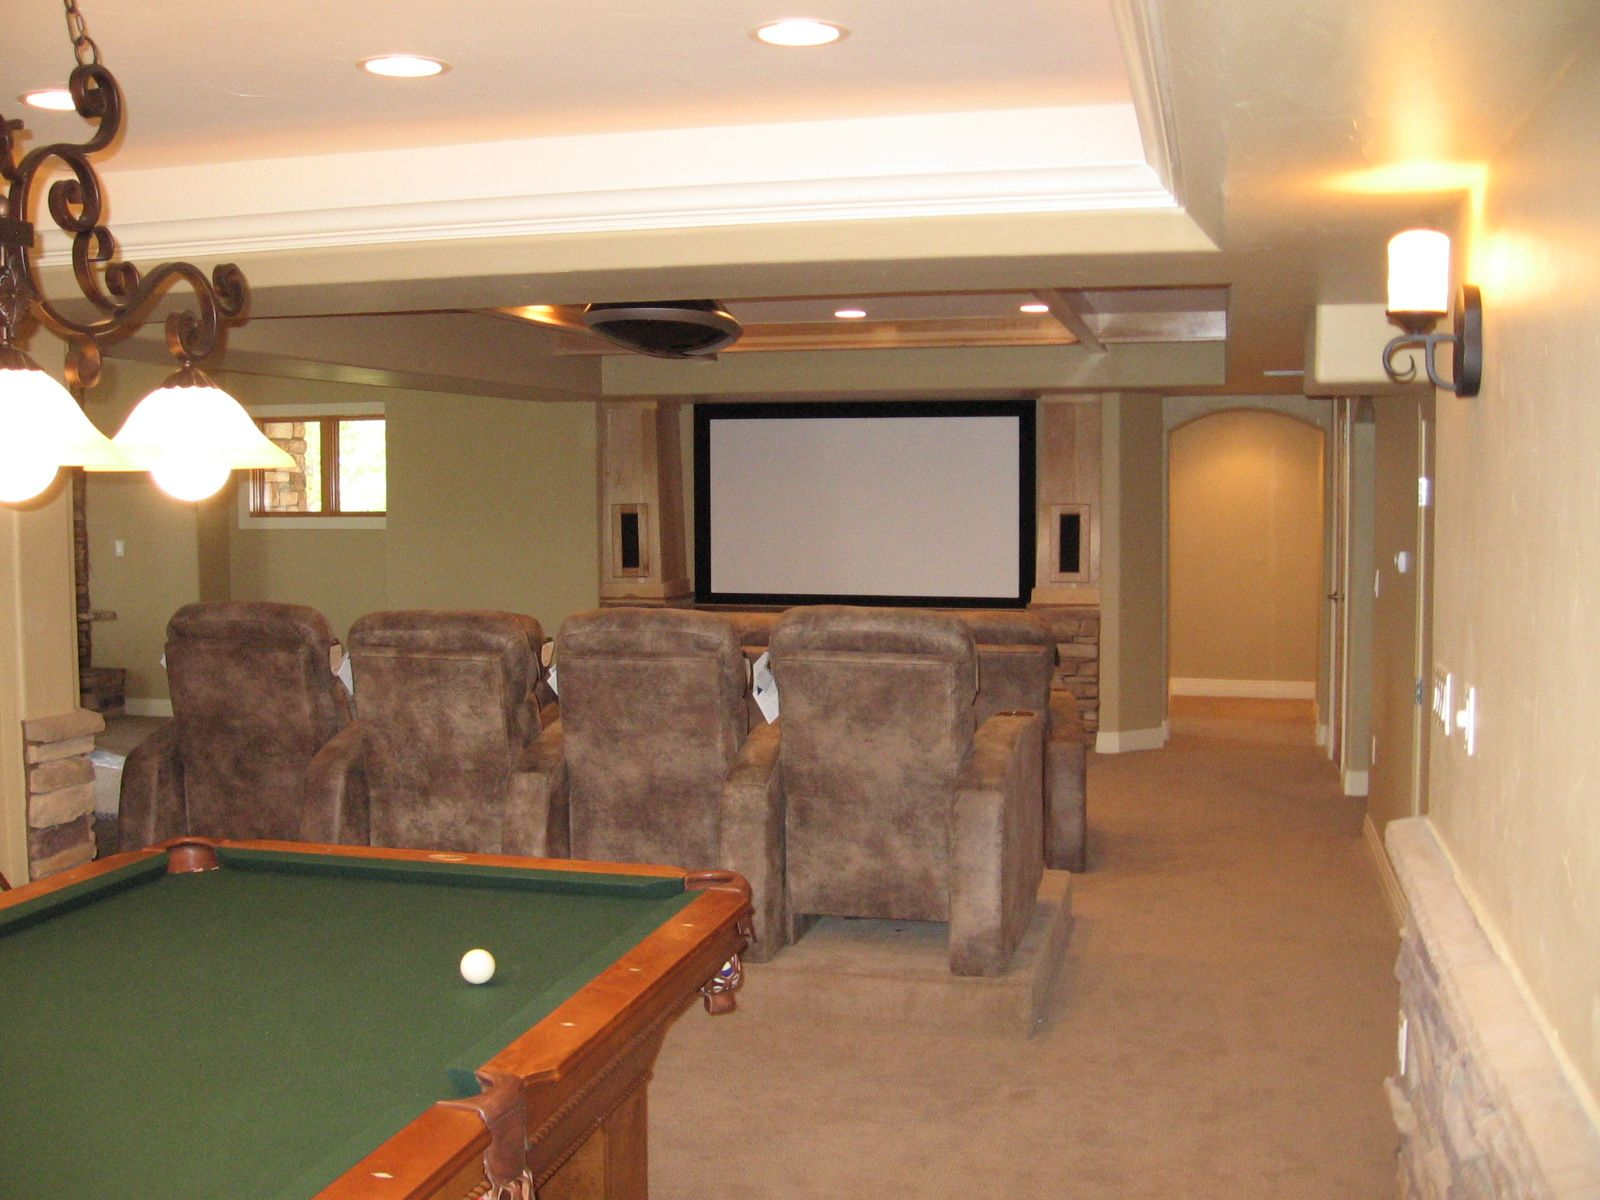 Basement Improvement Ideas finished basement ideas | basement design, basement finishing